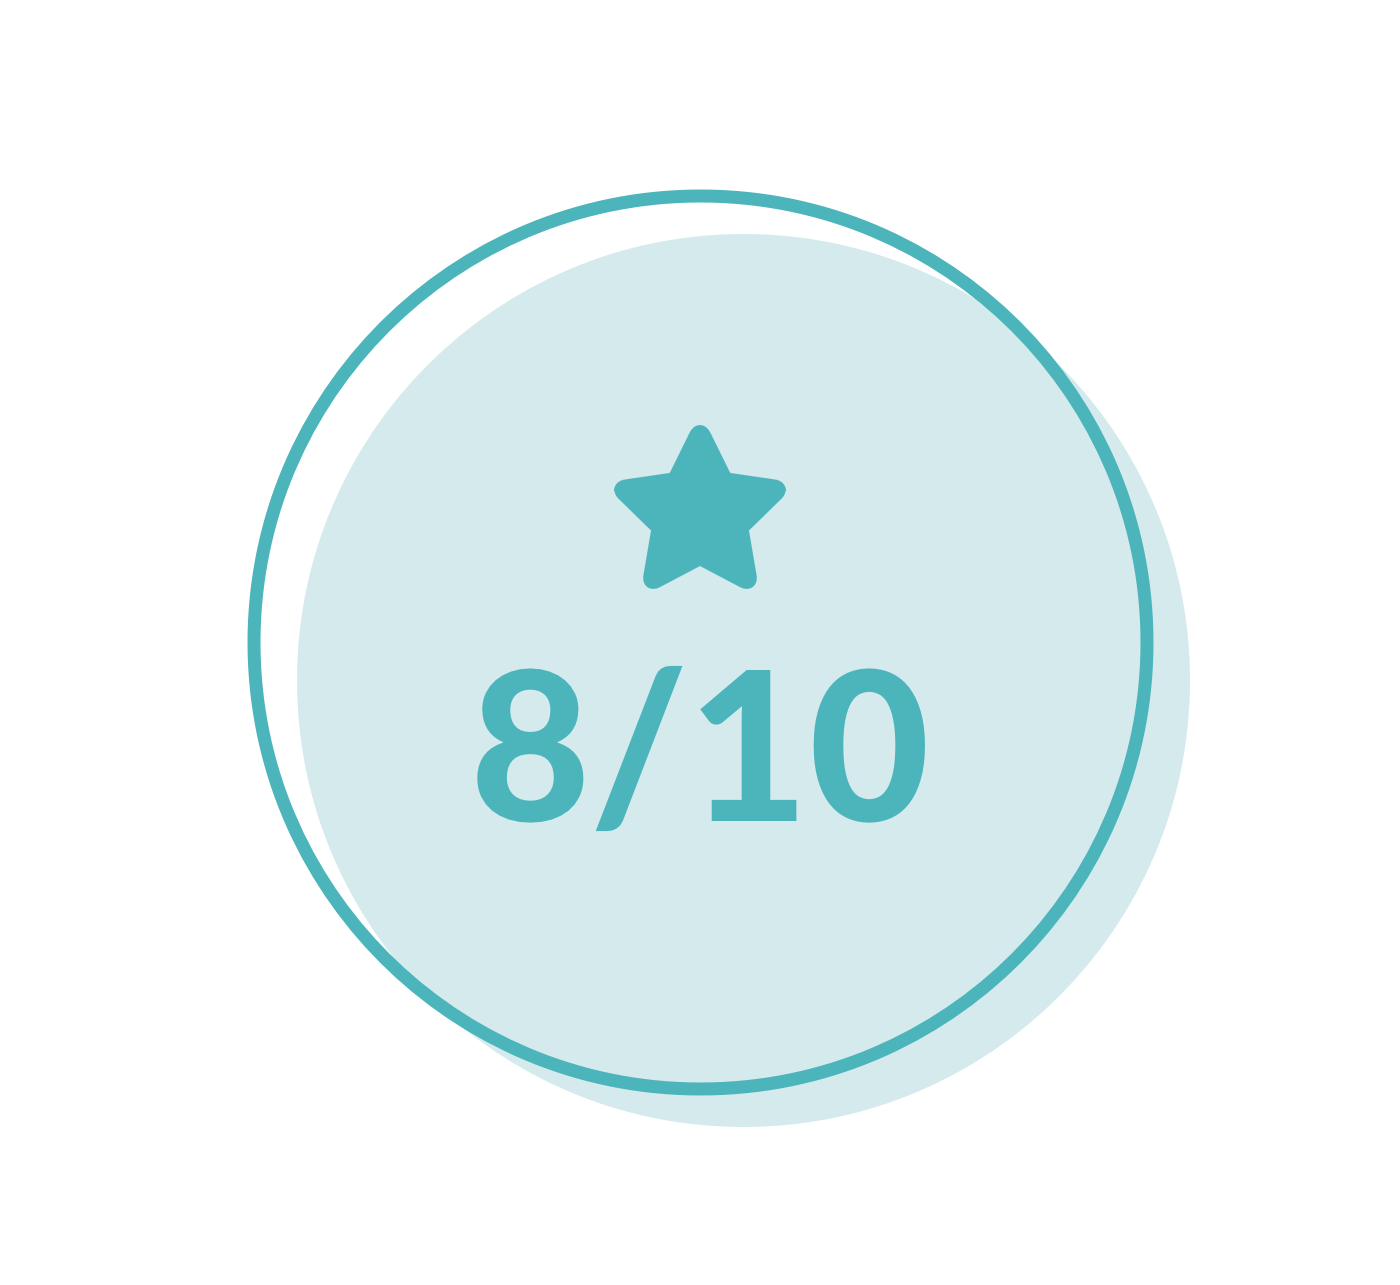 Hive email deliverability score icon